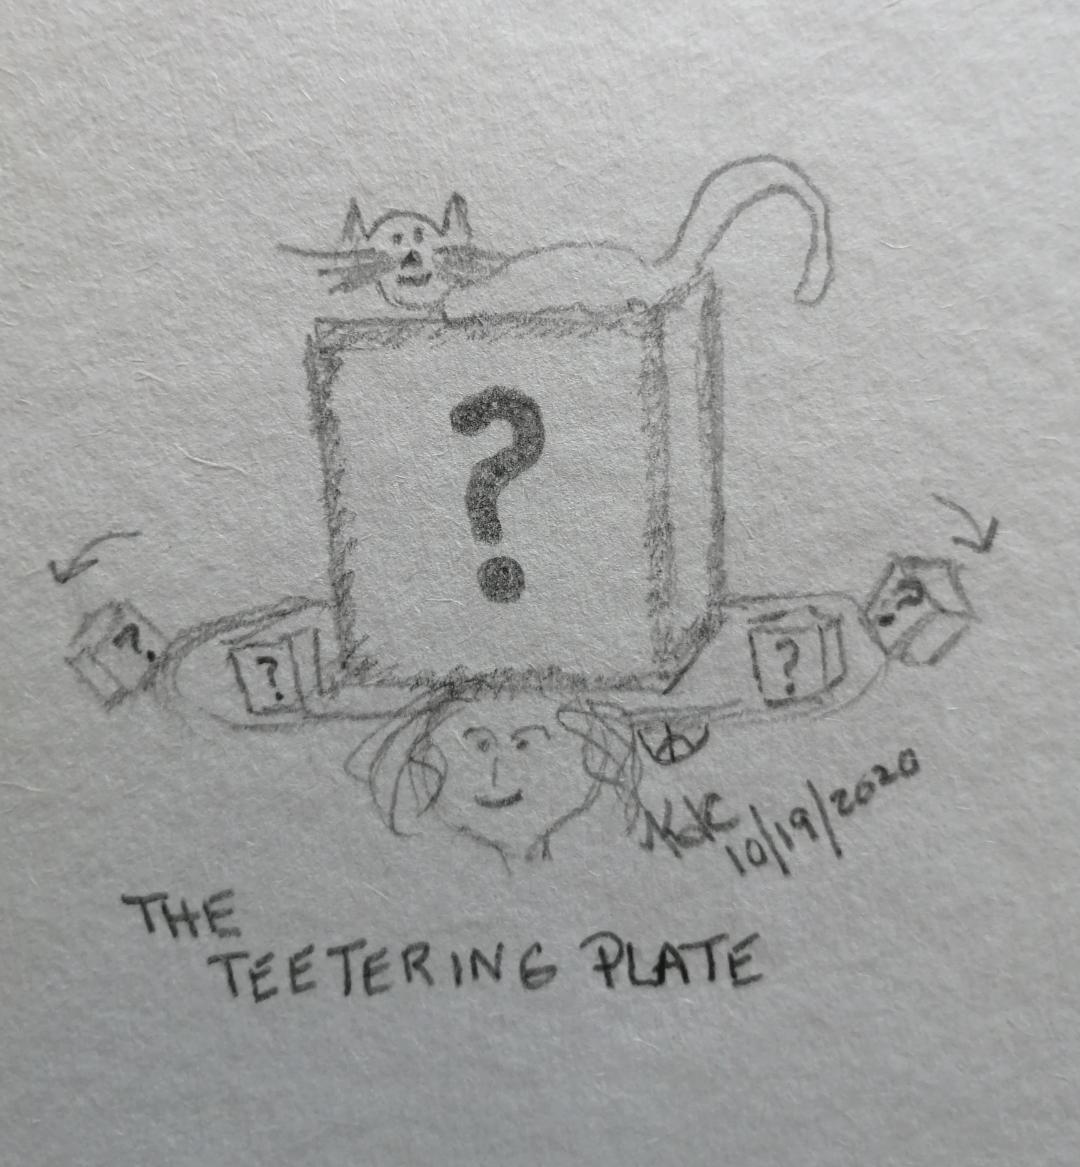 The Teetering Plate ~ by Katrina Curtiss 10/19/2020